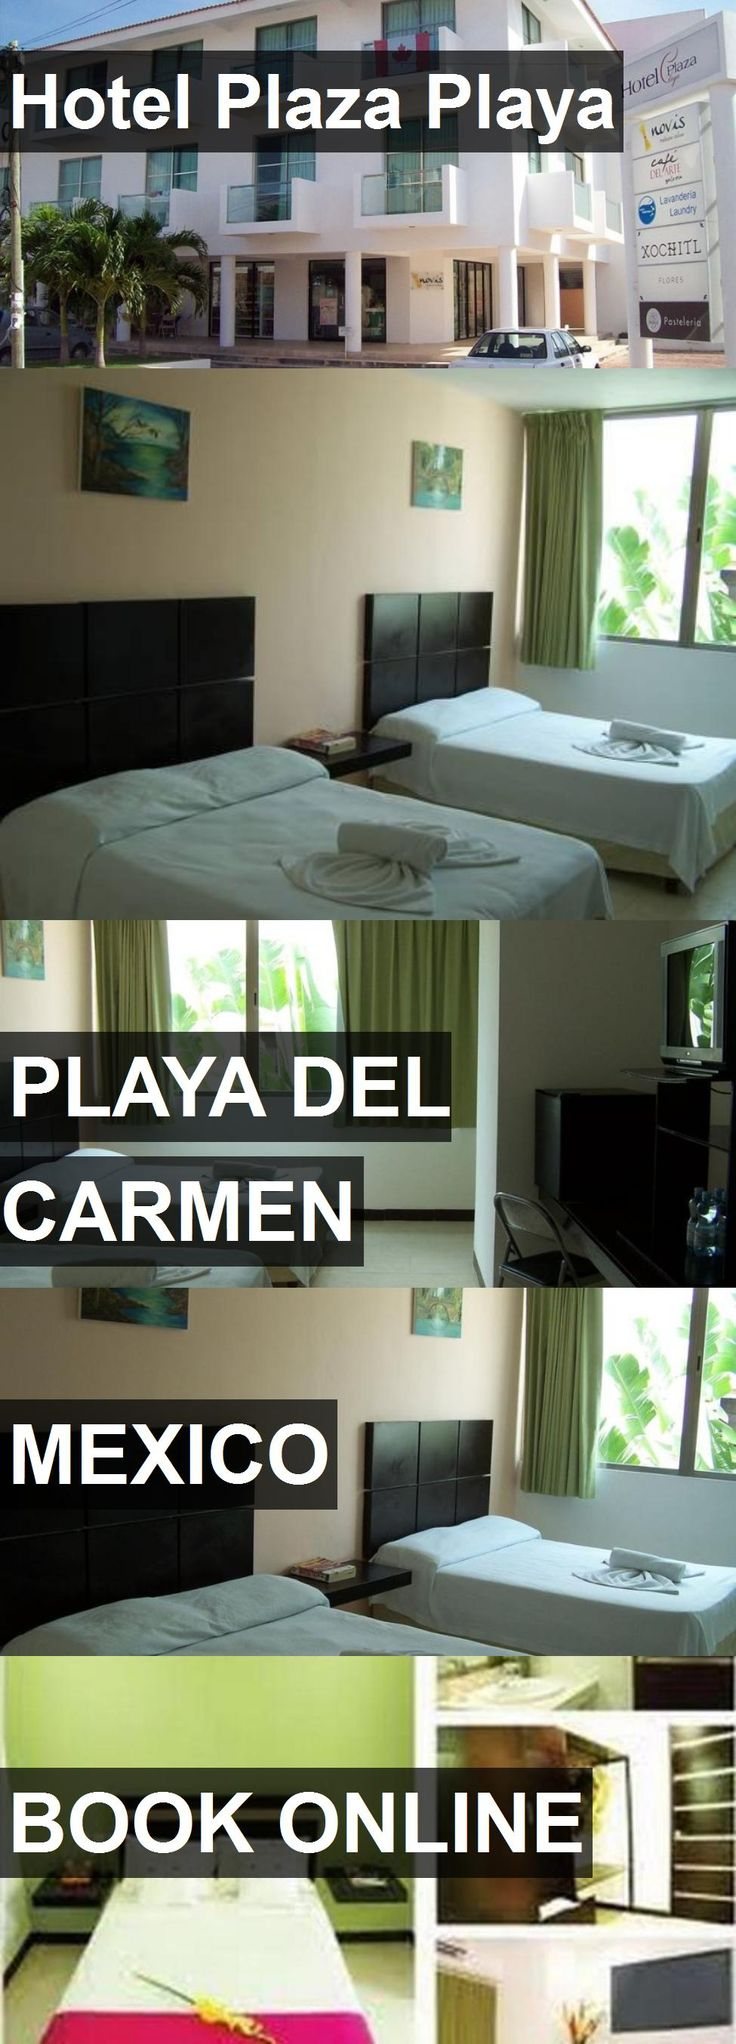 Hotel Hotel Plaza Playa in Playa Del Carmen, Mexico. For more information, photos, reviews and best prices please follow the link. #Mexico #PlayaDelCarmen #HotelPlazaPlaya #hotel #travel #vacation